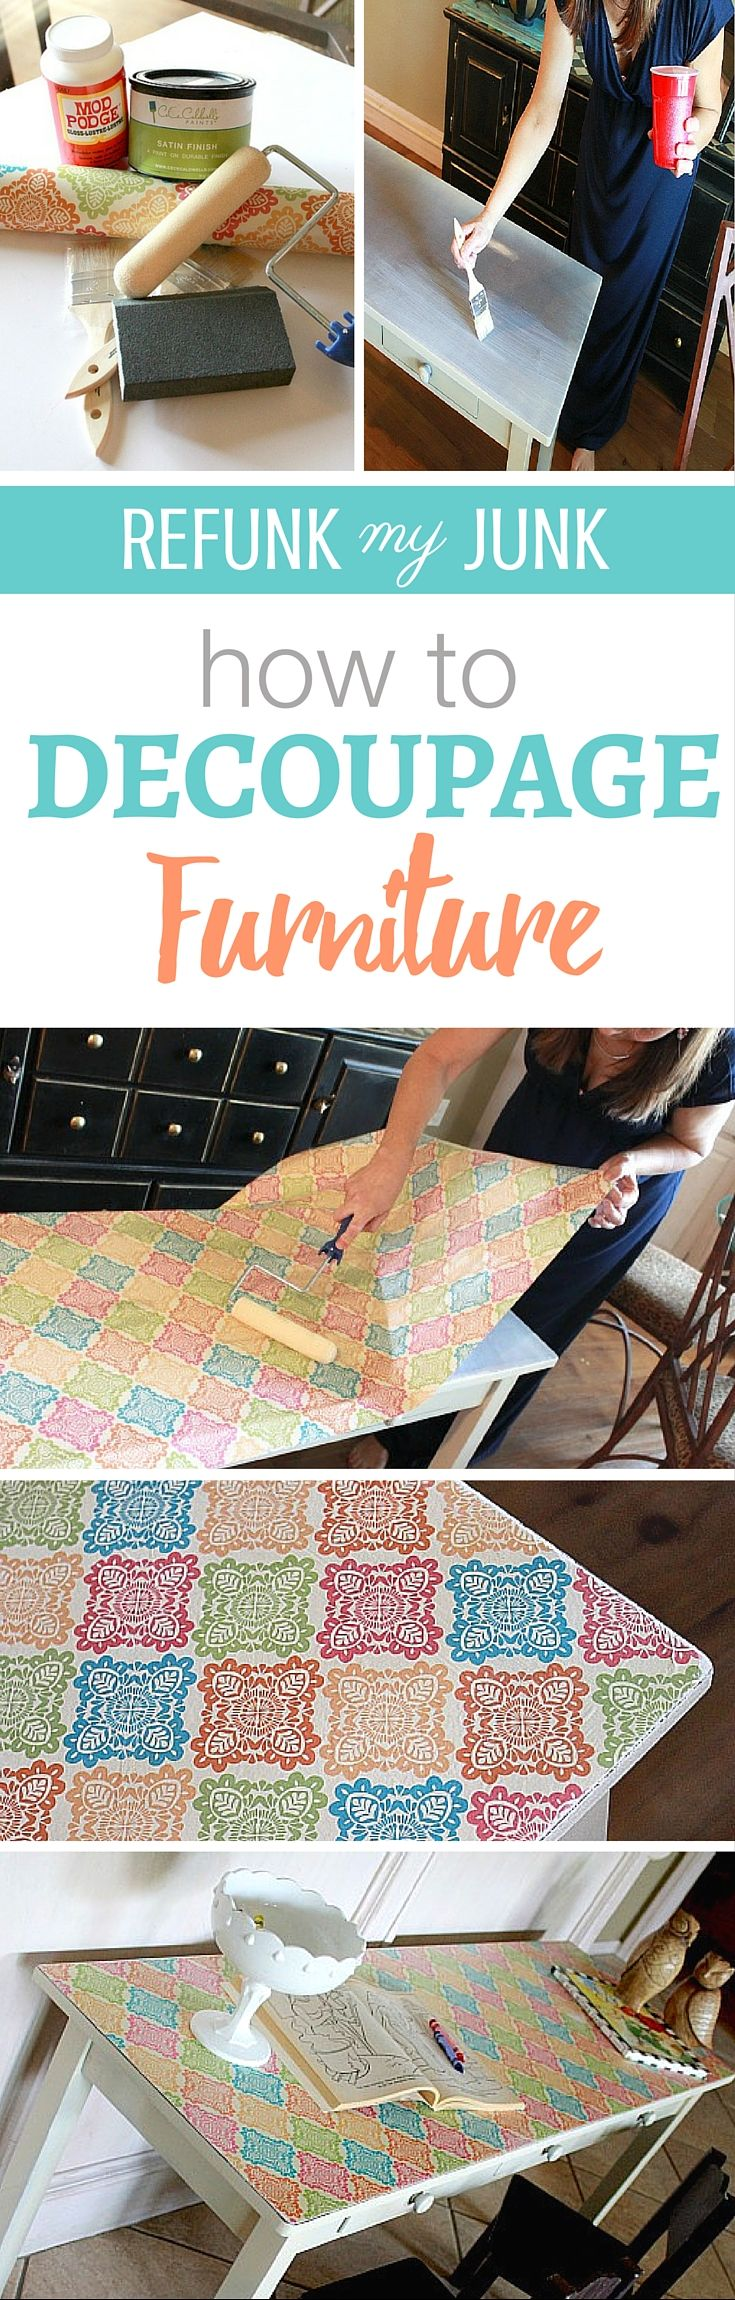 how to decoupage furniture easy steps to use mod podge to add wrapping paper or